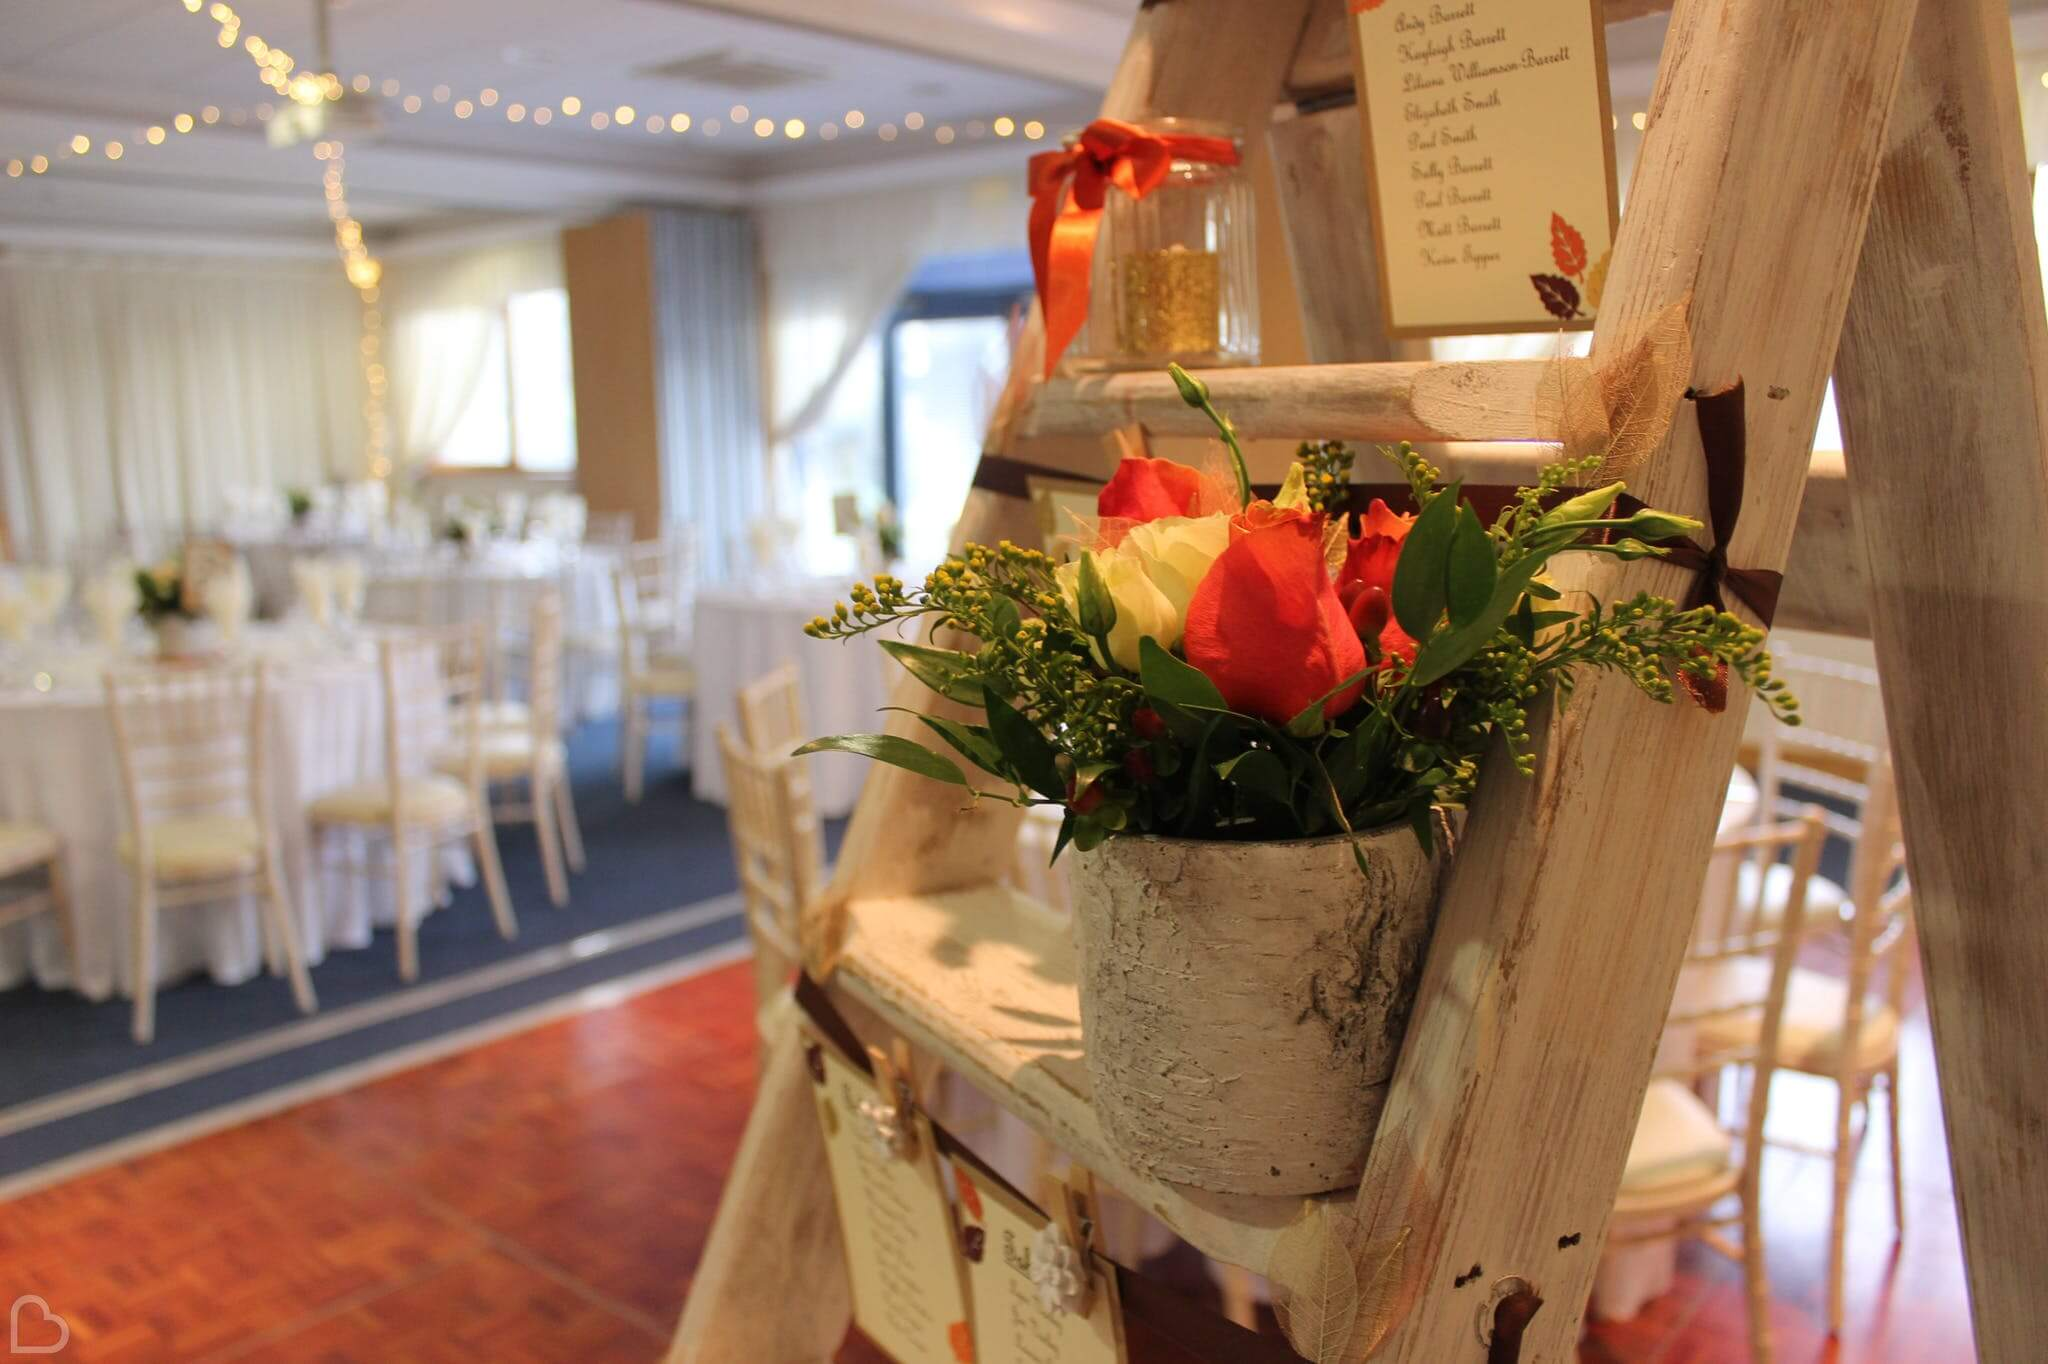 A flower pot is set up next to table seating charts at South Green Park Weddings, a beautiful wedding venue in Norfolk.